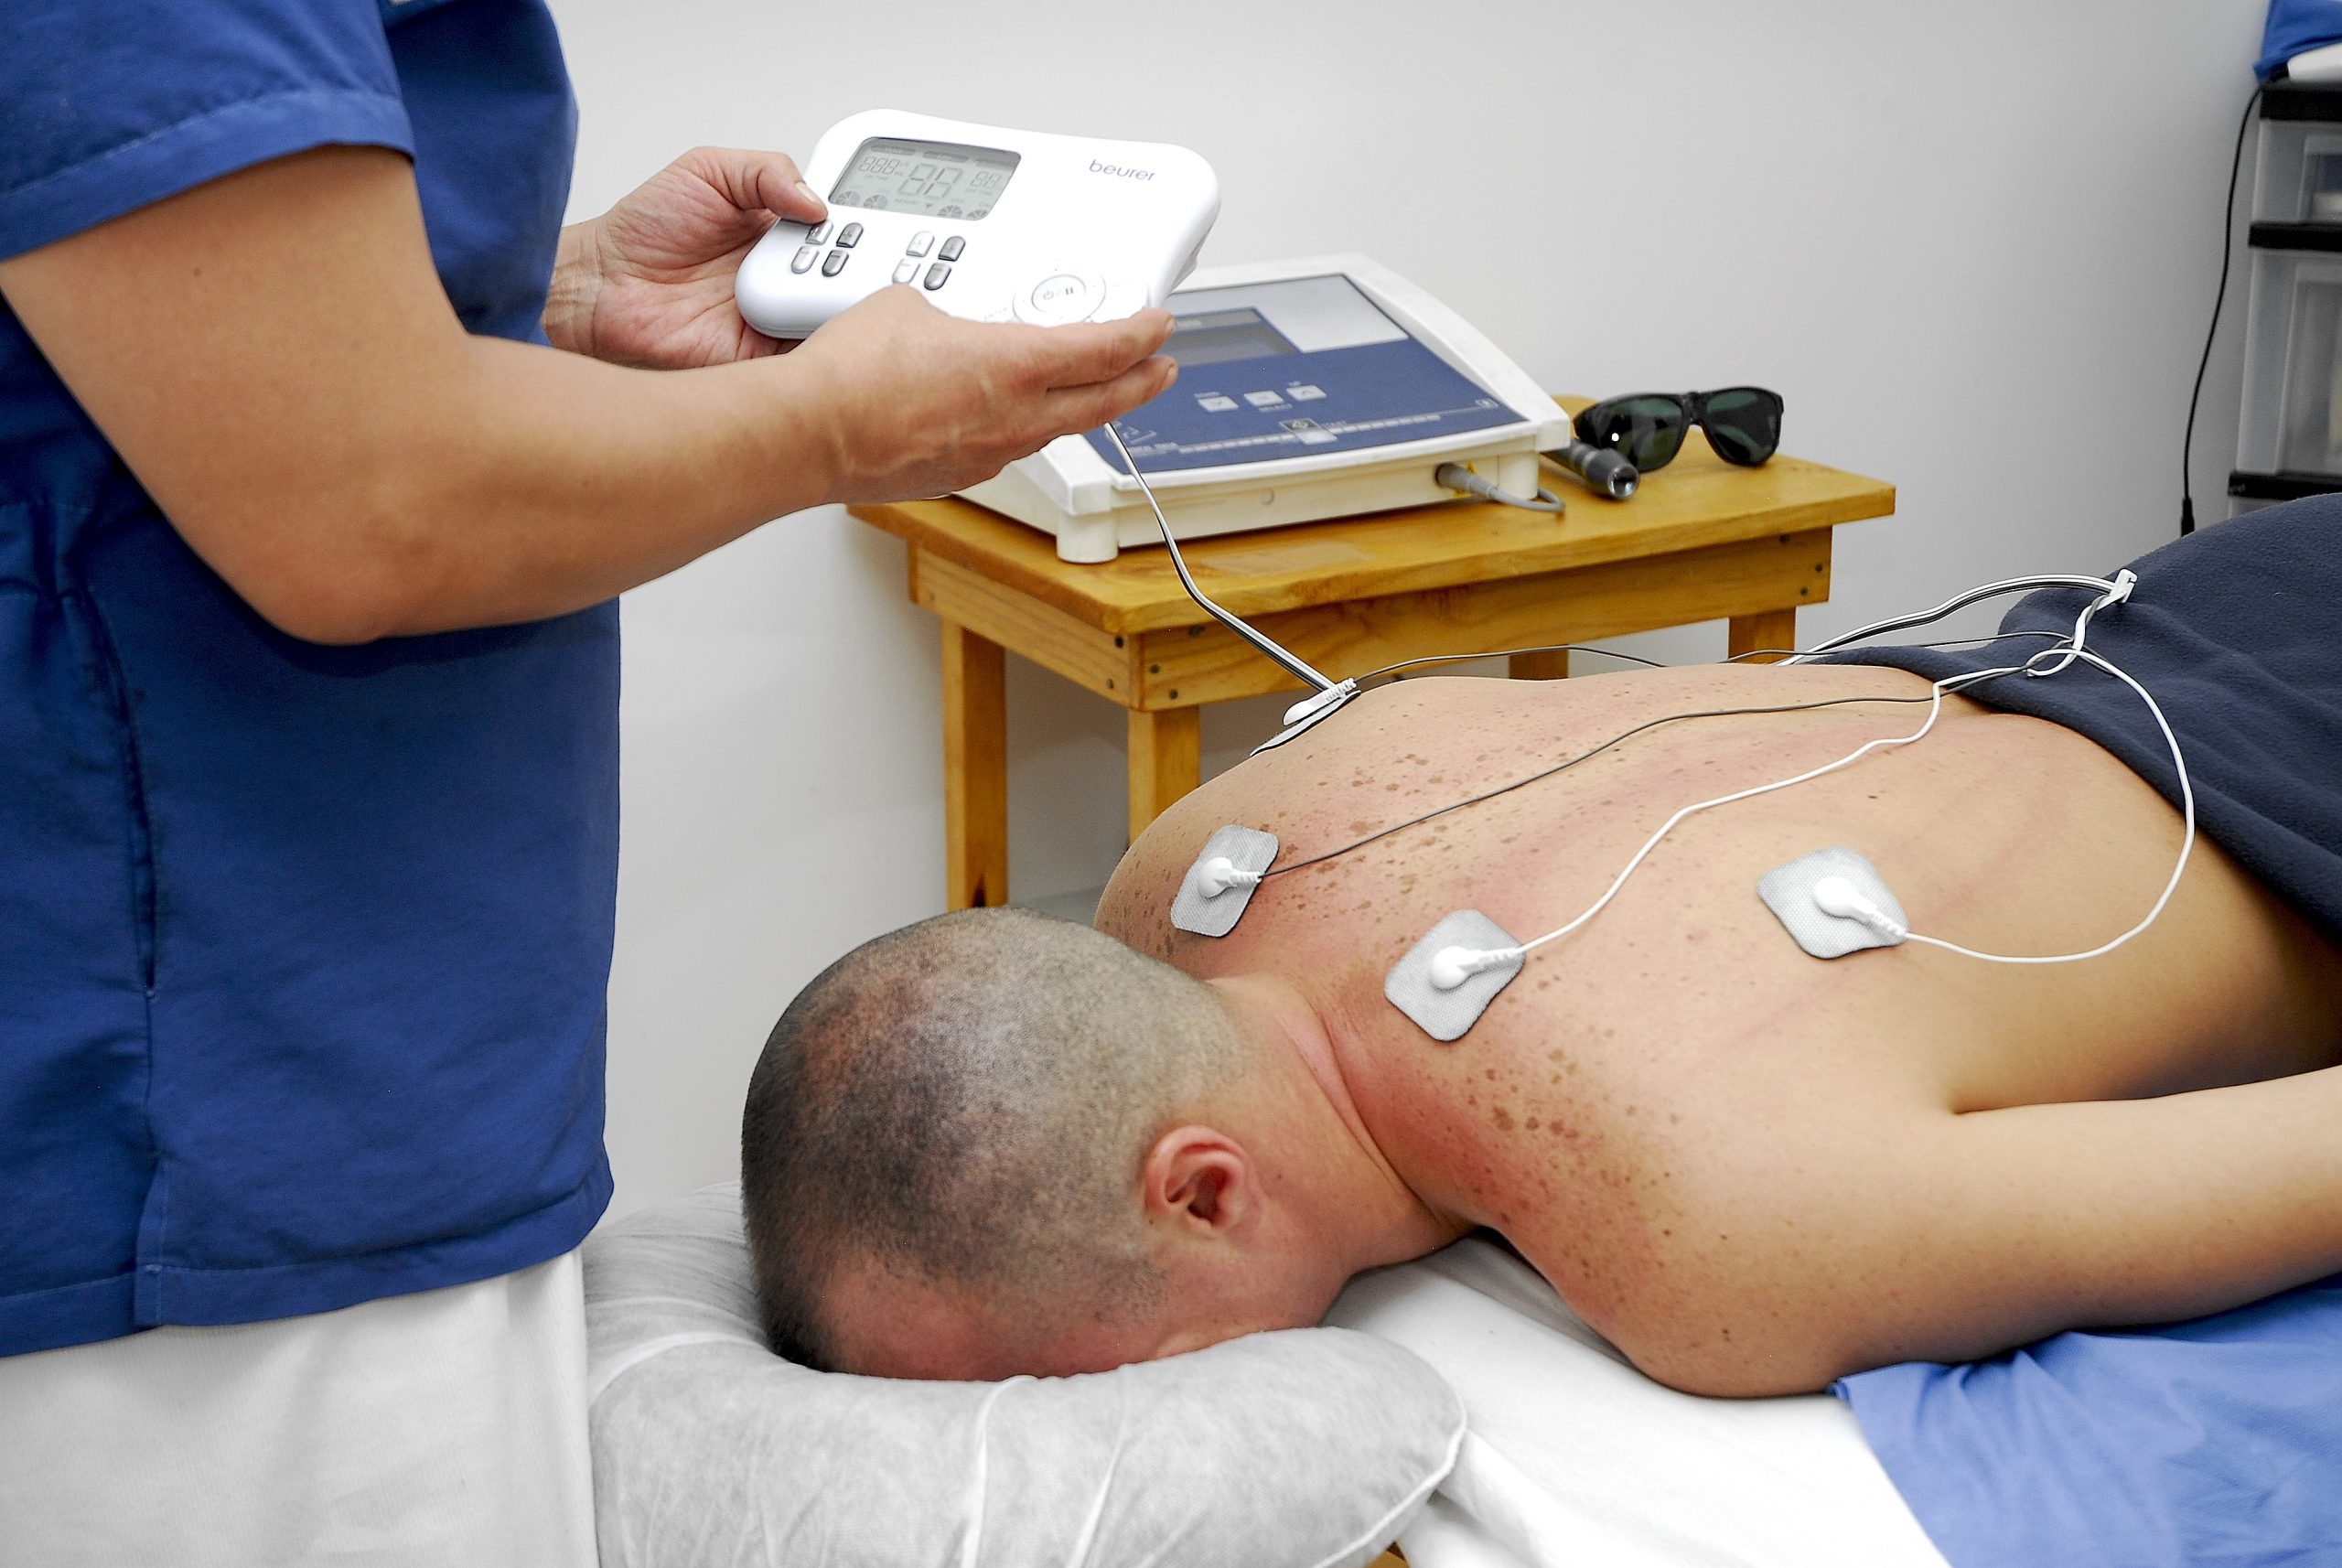 Electroterapia Medither